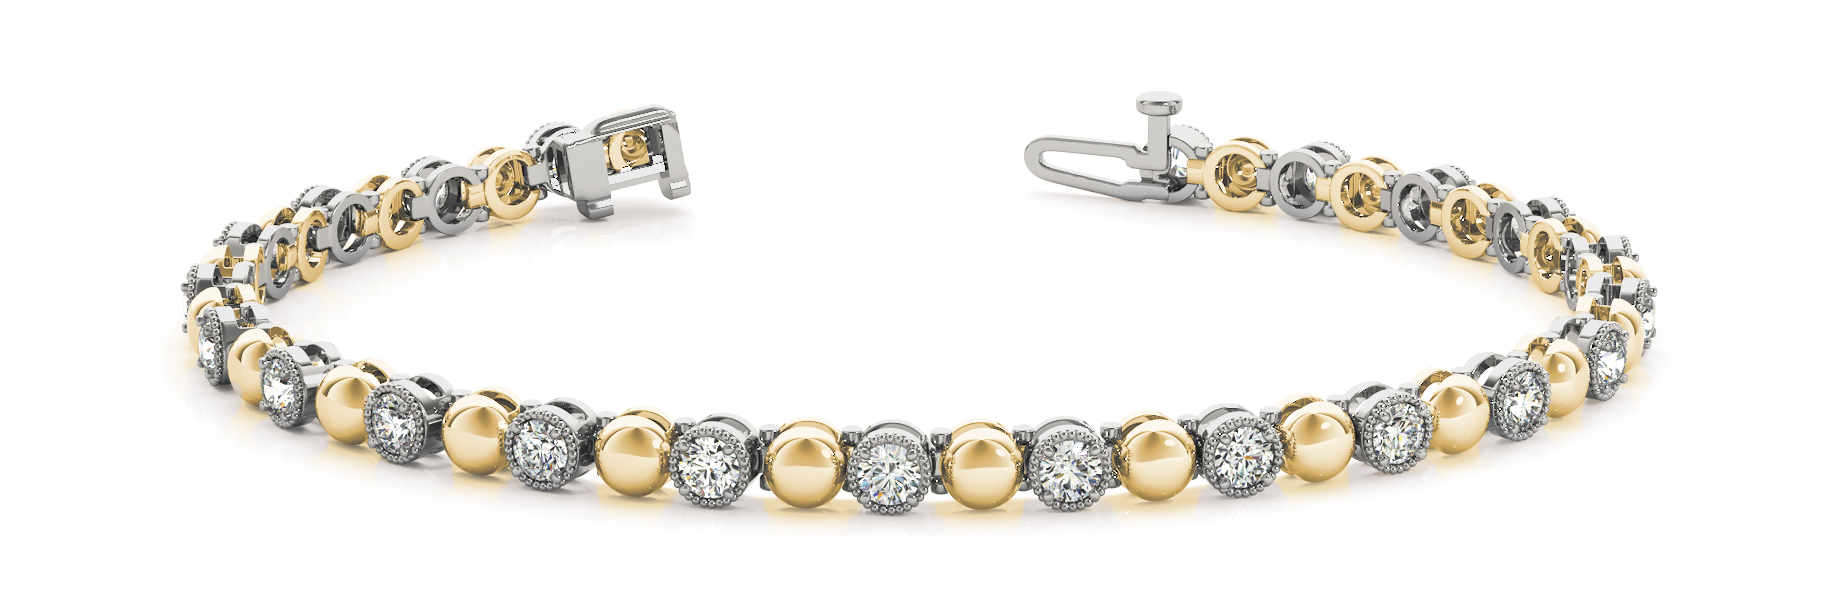 Round Diamond and Yellow Gold Bracelet 0.66 Carat